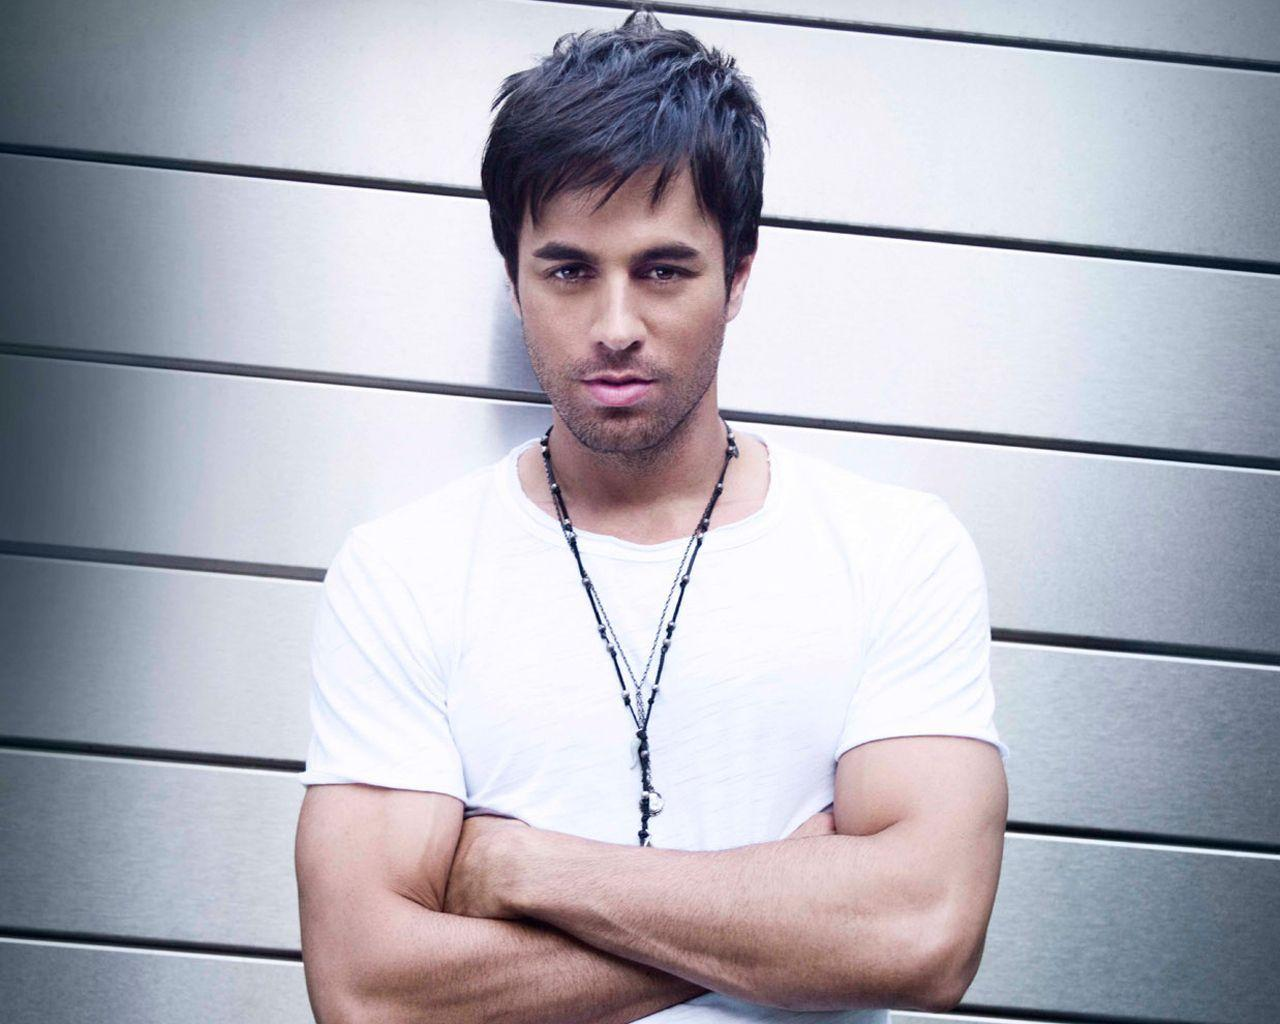 Enrique Iglesias Wallpapers - Wallpaper Cave